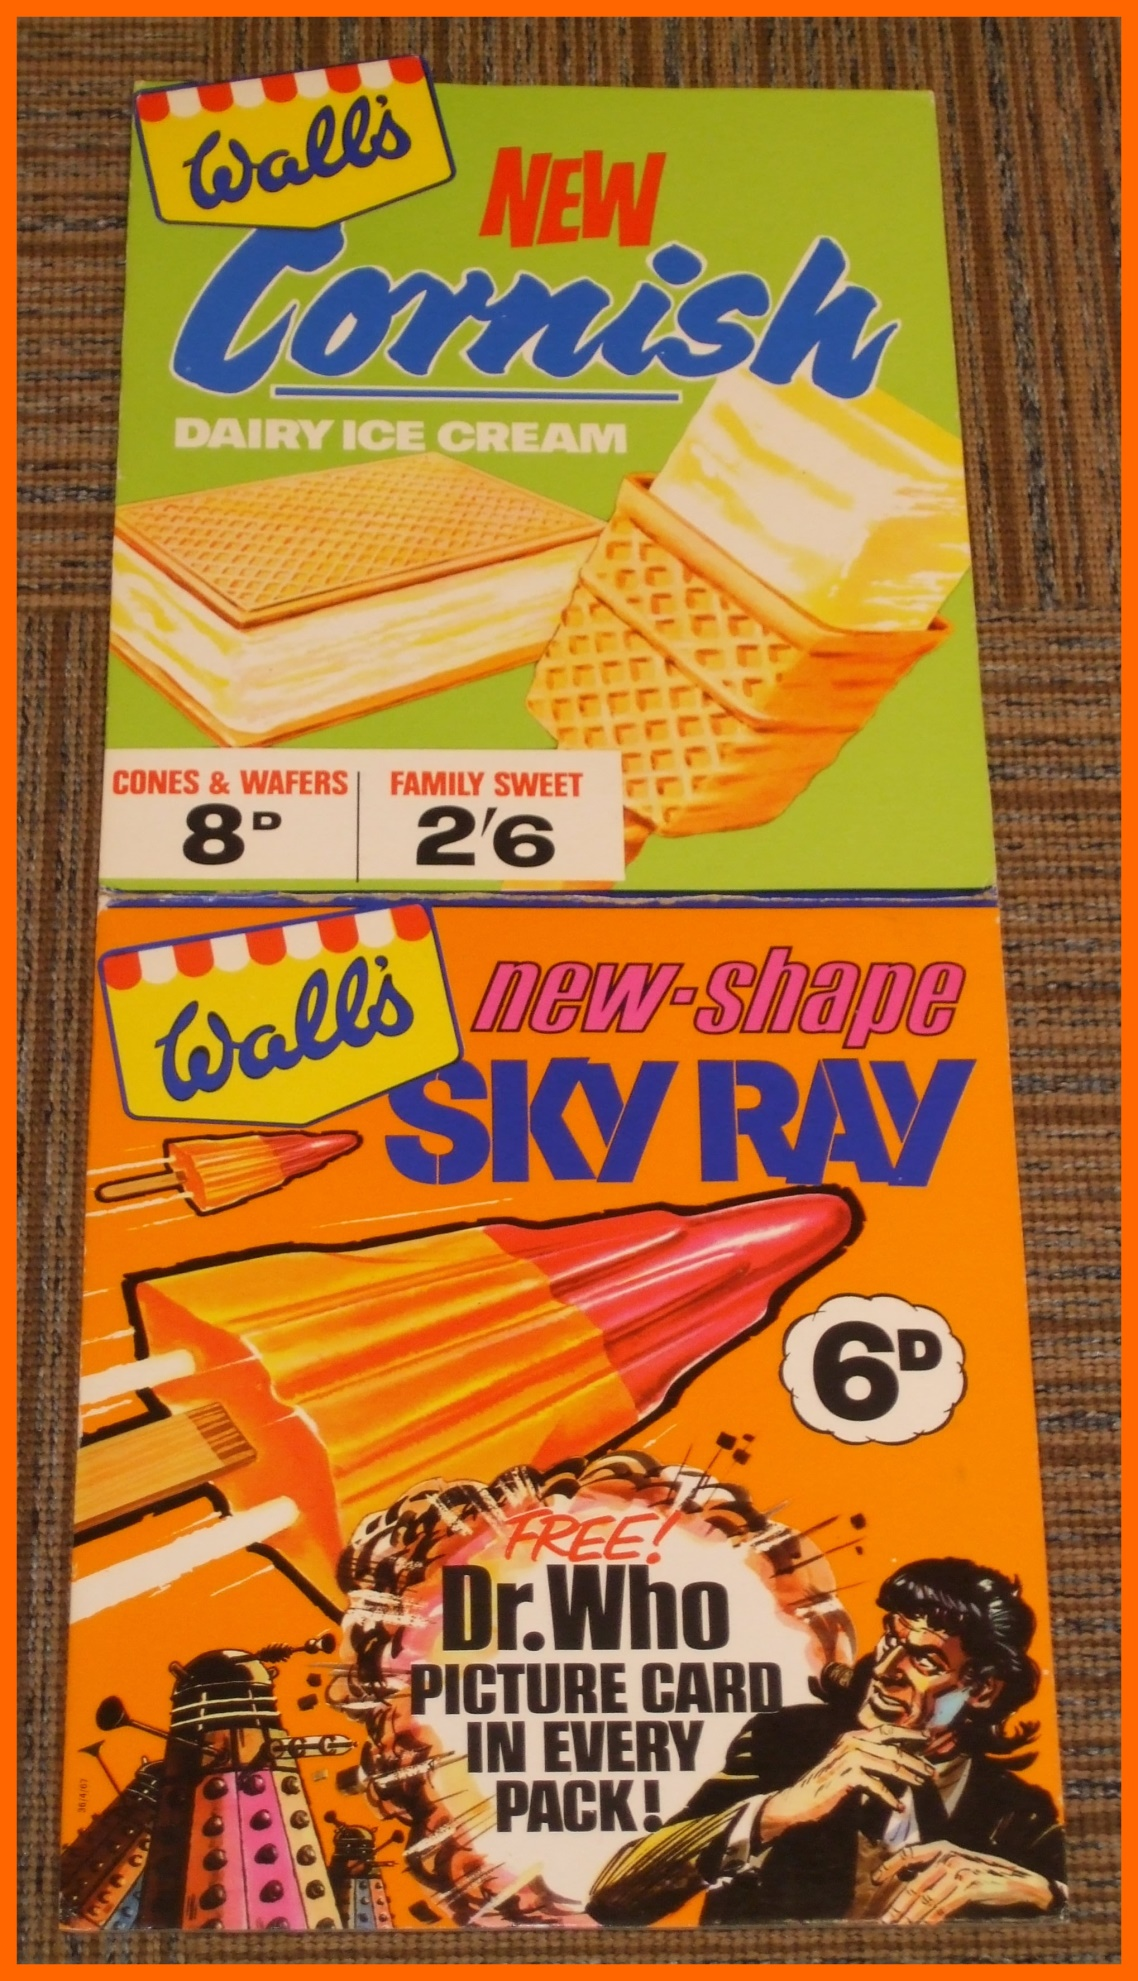 WANTED - Shop advertising display of the Wall's Sky Ray Dr. Who promotion (image courtesy of Richard Bignell)